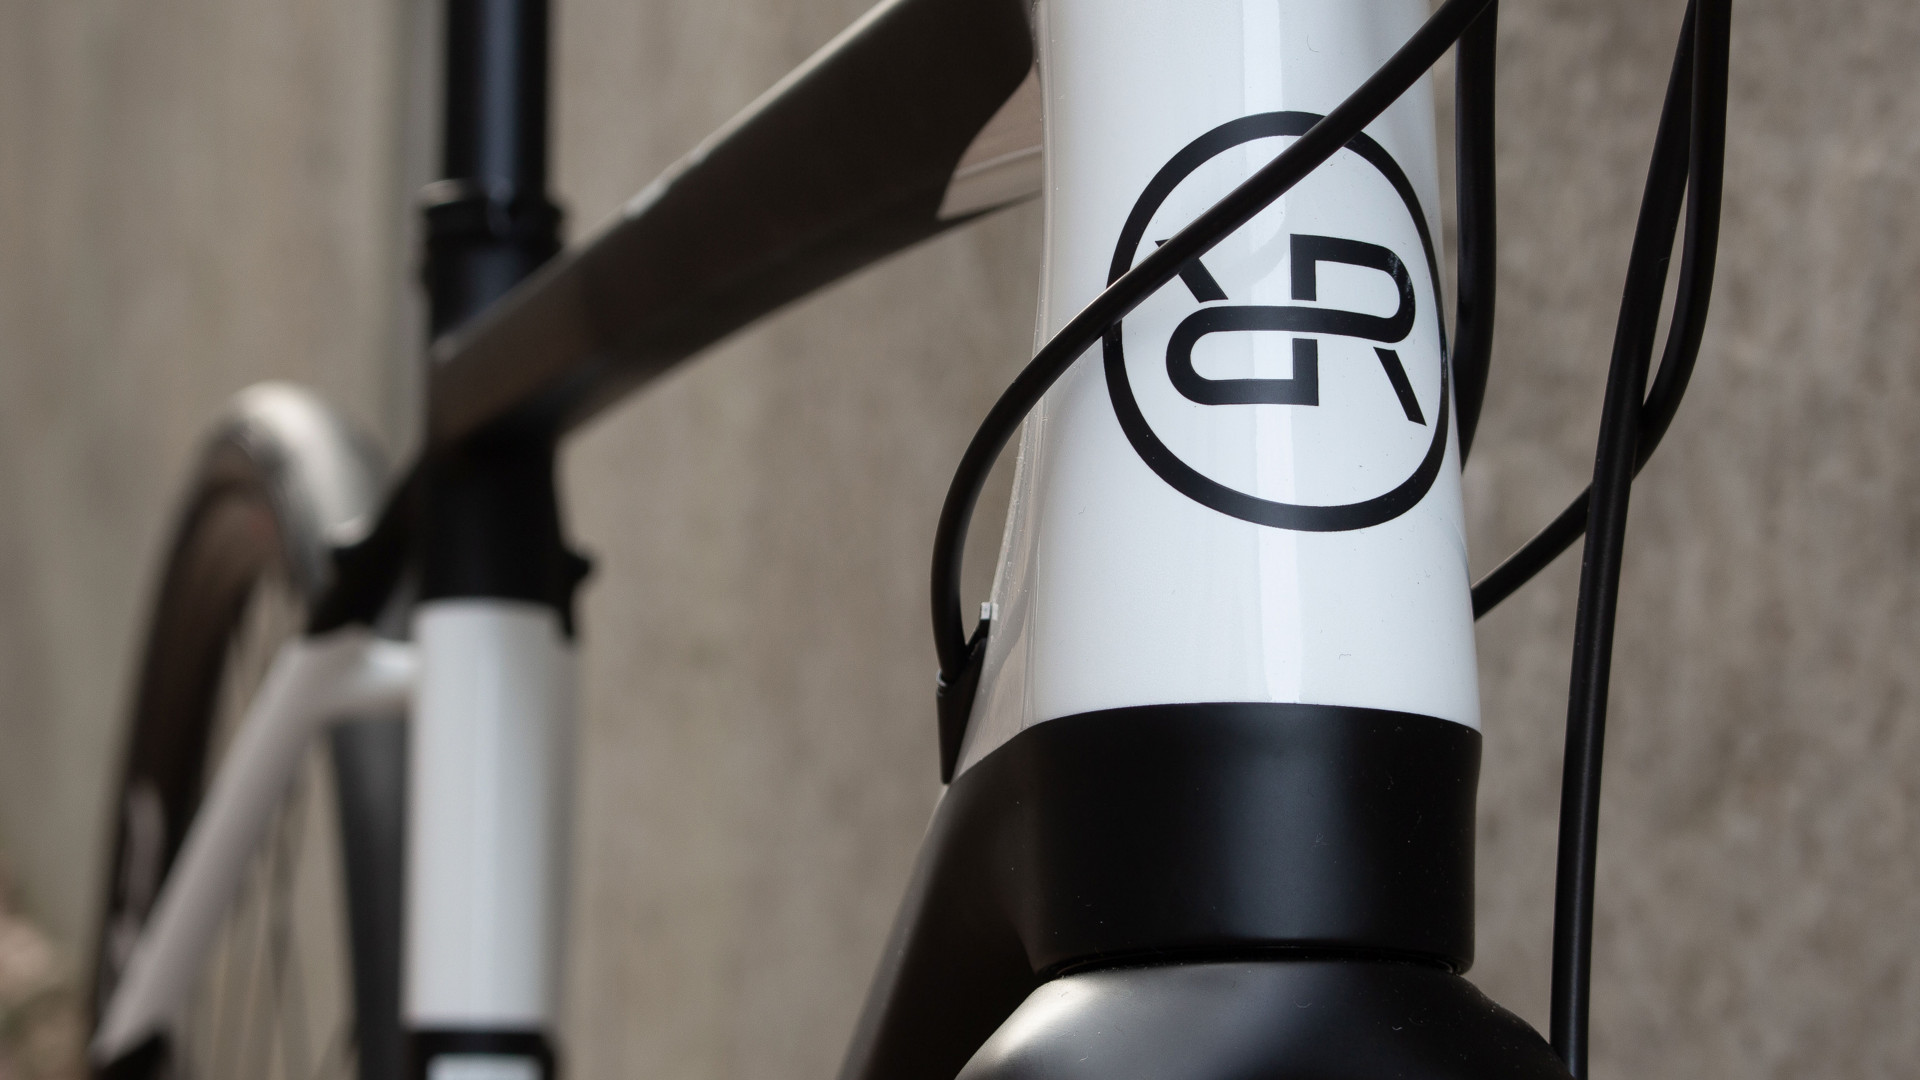 Close up photo of the black carbon bike frame with the Orro Bikes logo finished in black with a white background